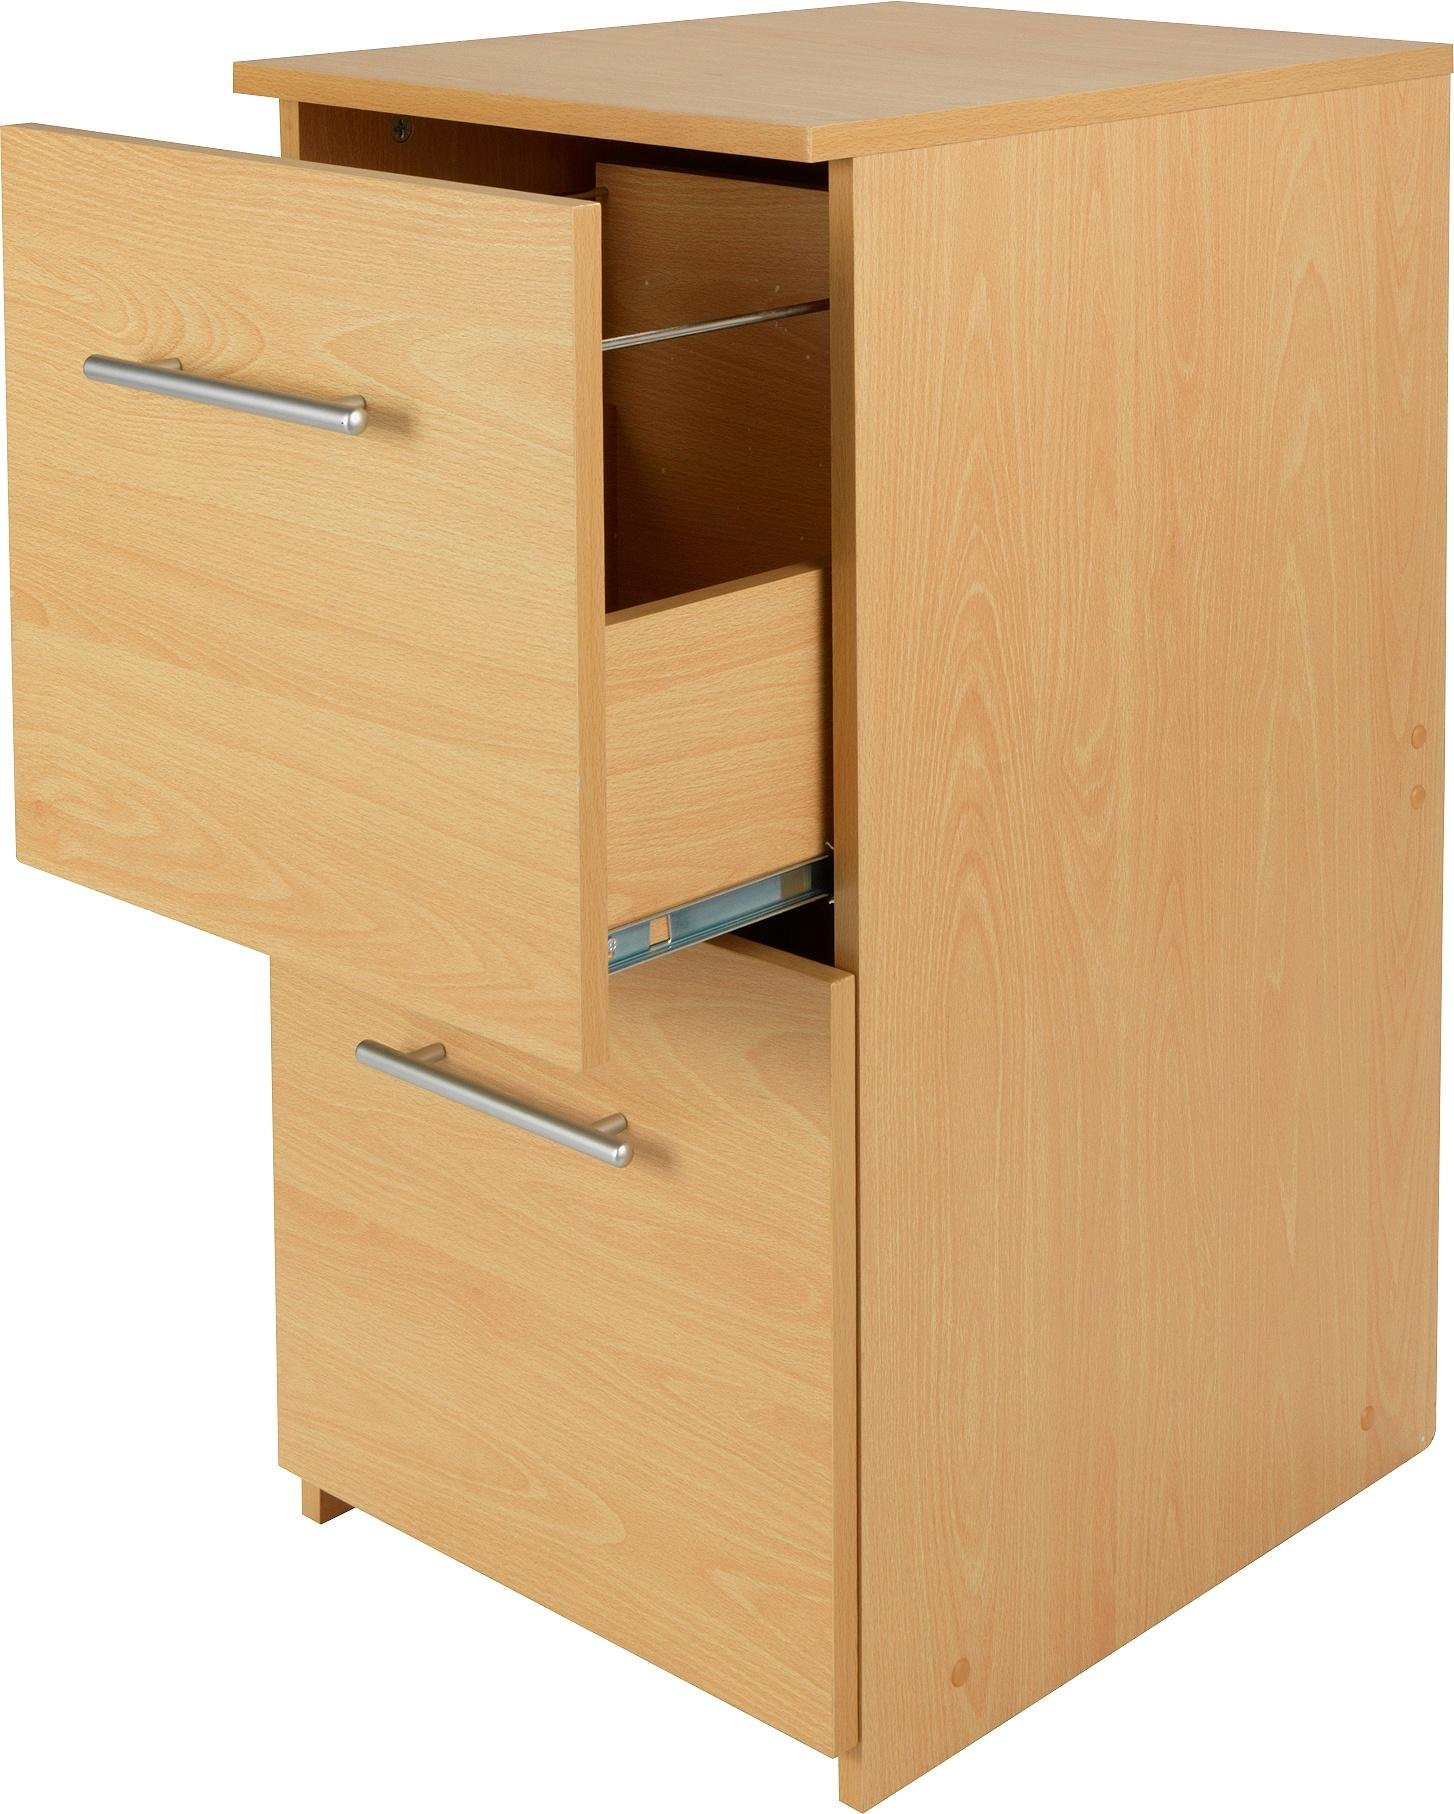 Sale On 2 Drawer Filing Cabinet Beech Effect Home By